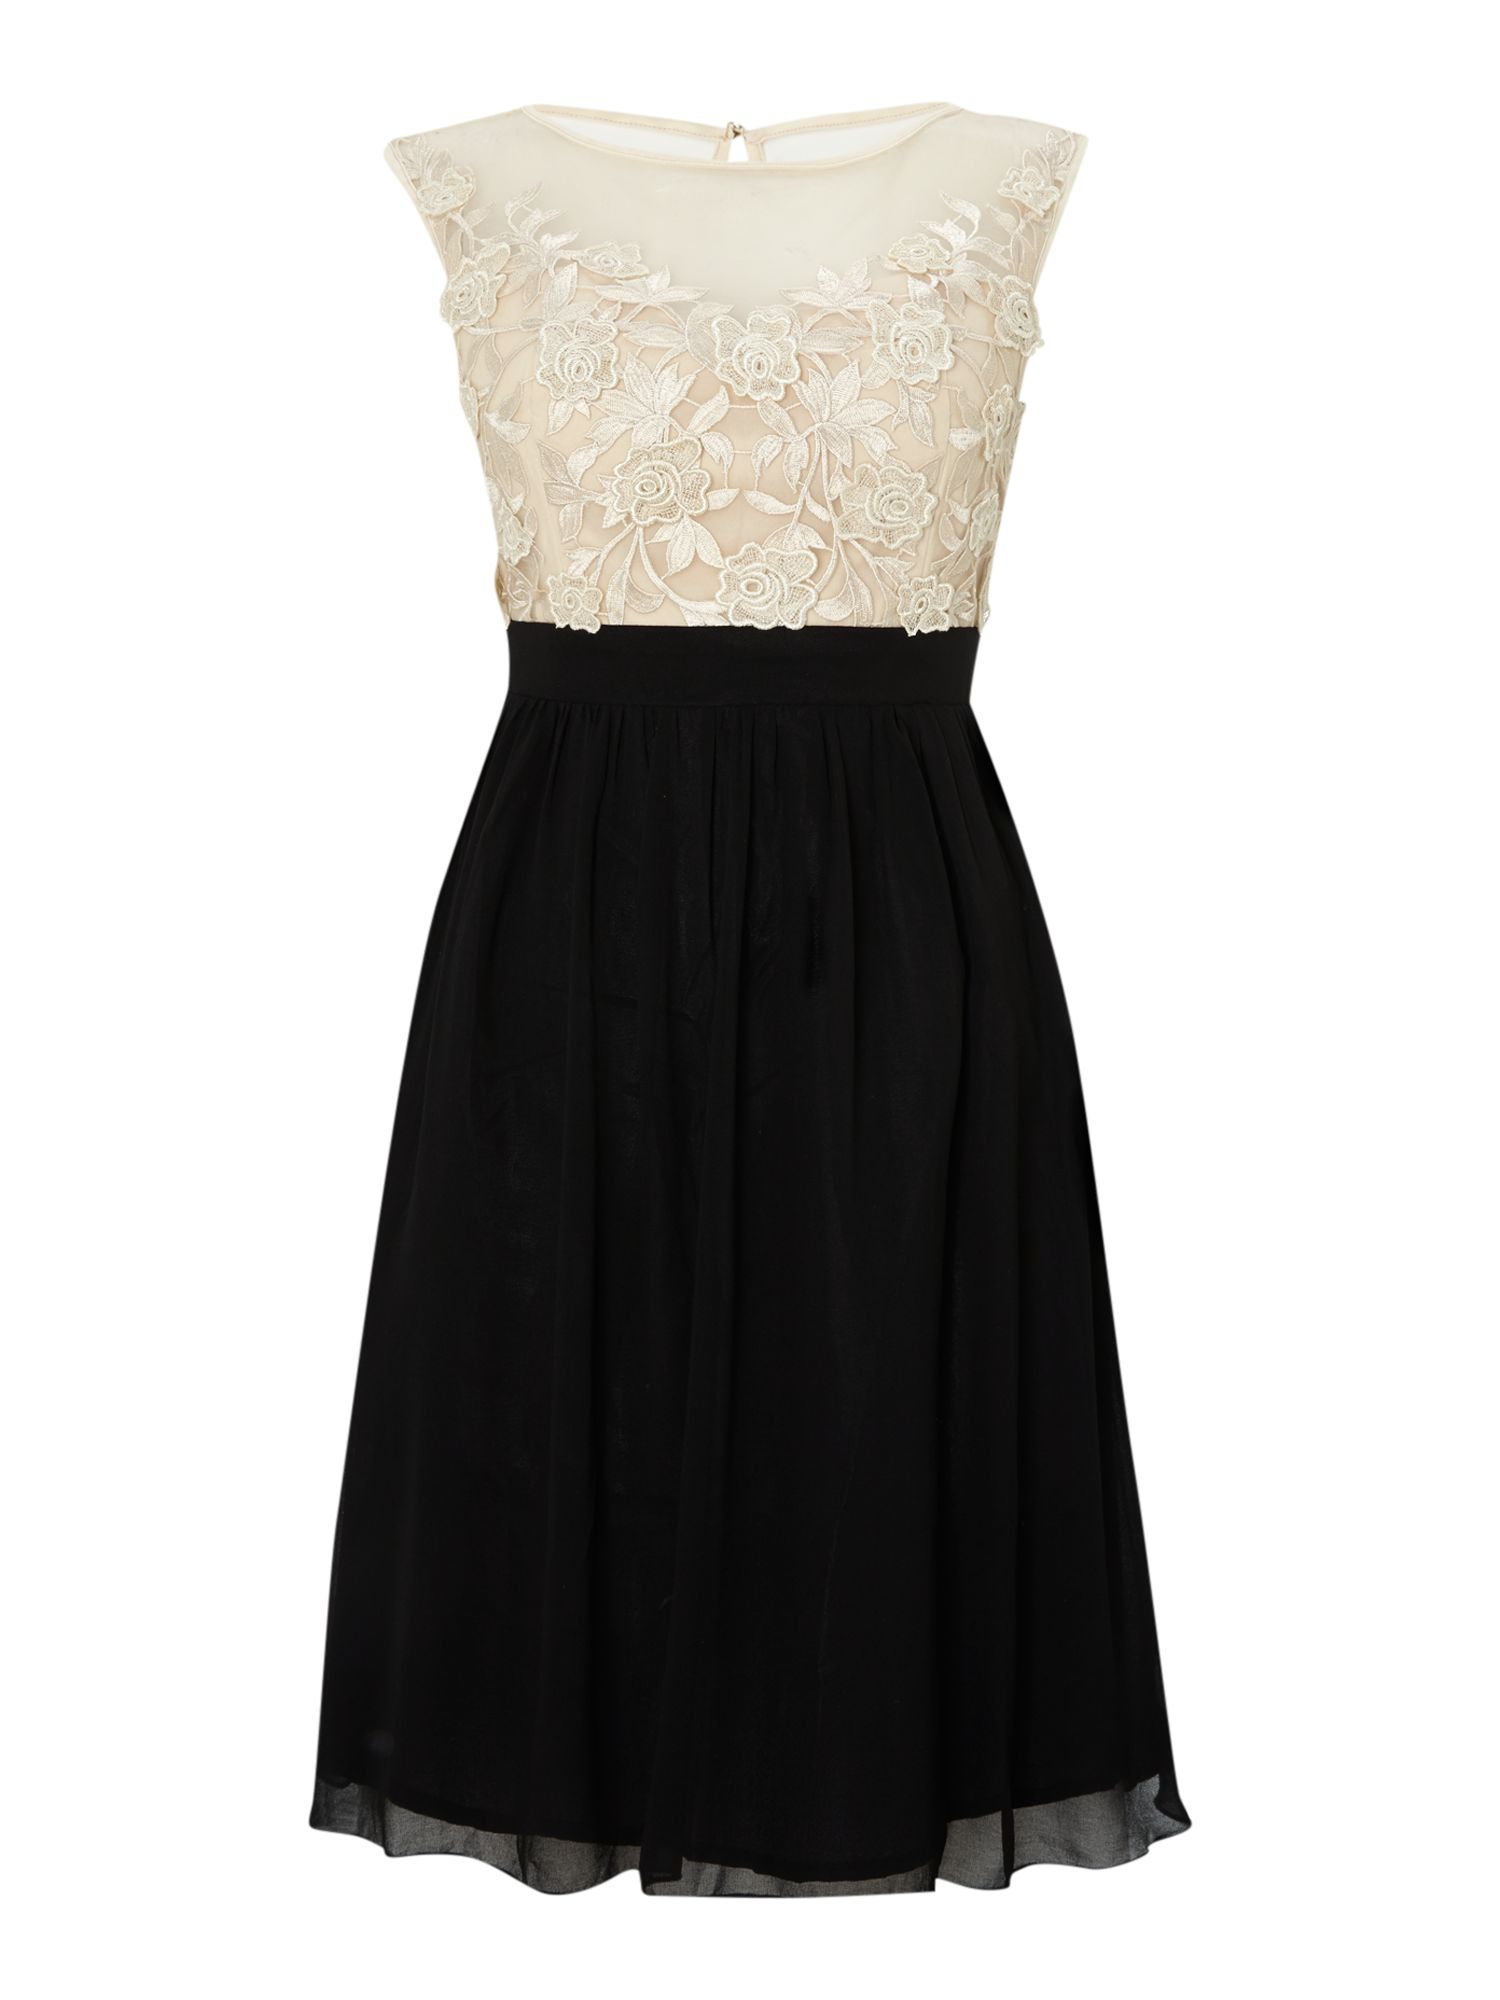 Sleeveless sheer lace top fit and flare dress